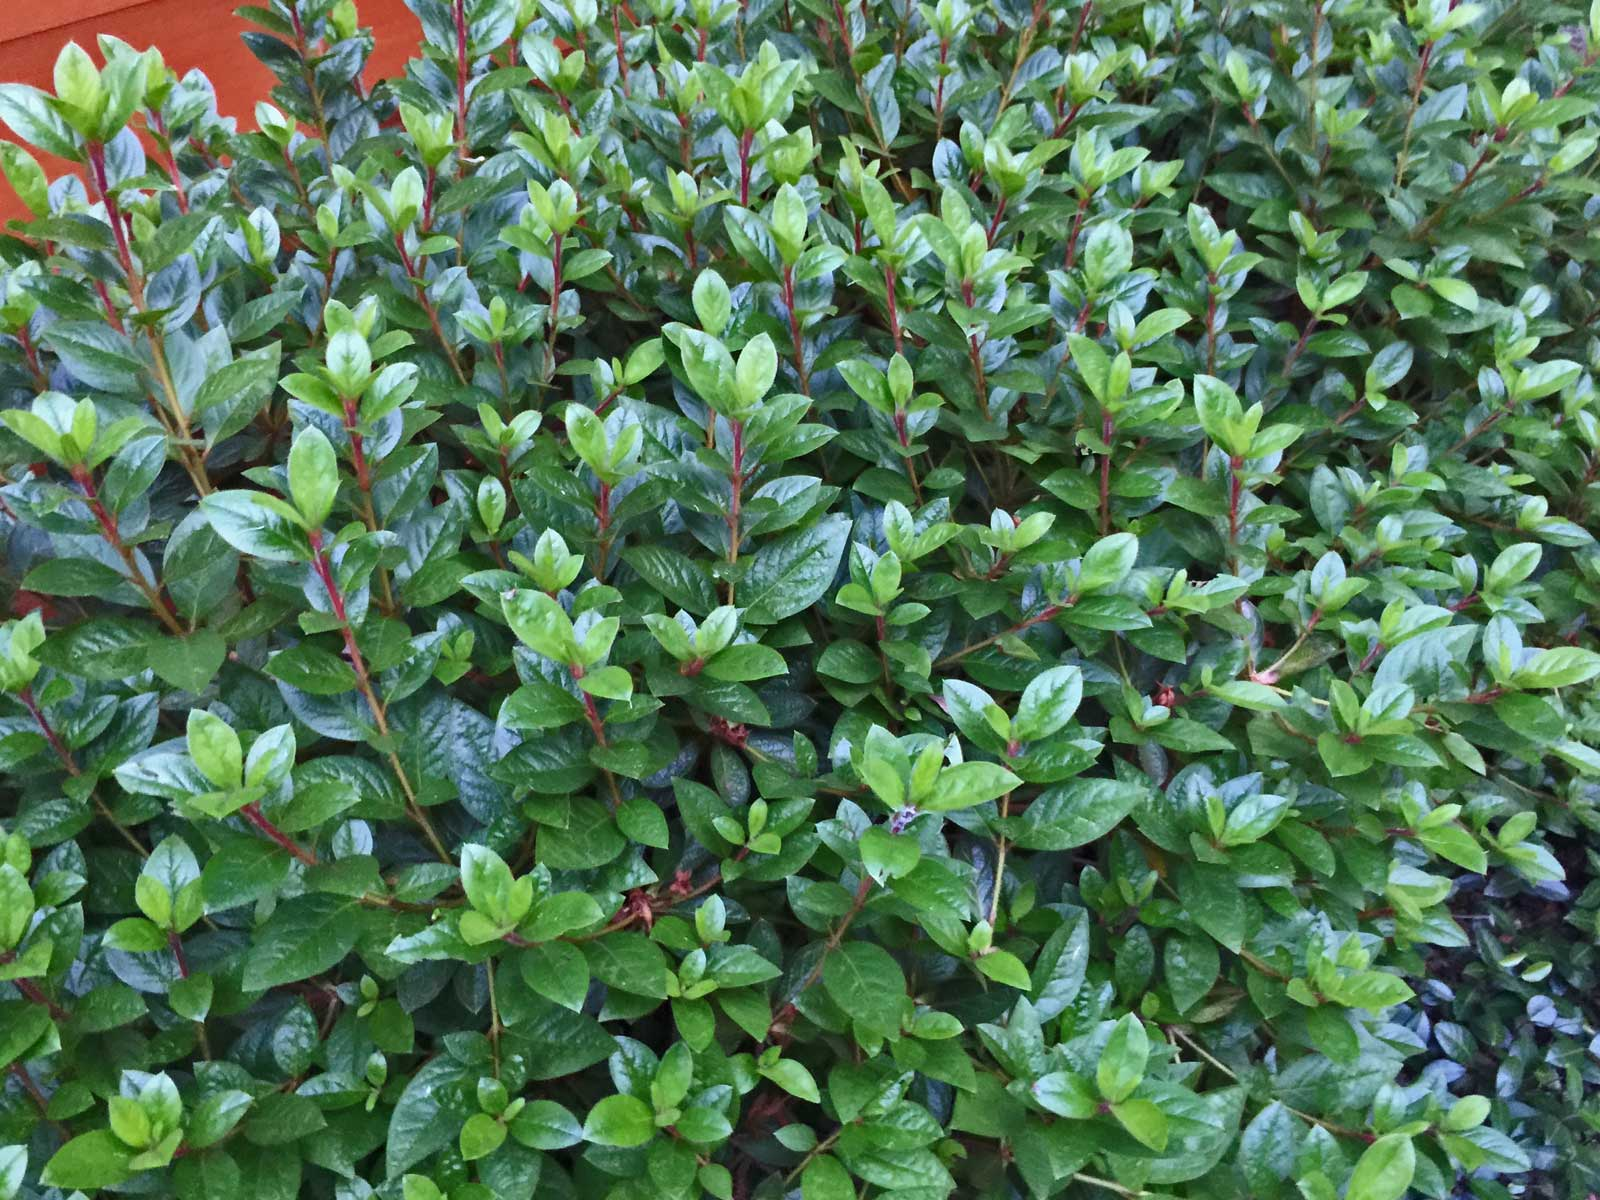 azalea evergreen leaves.jpg